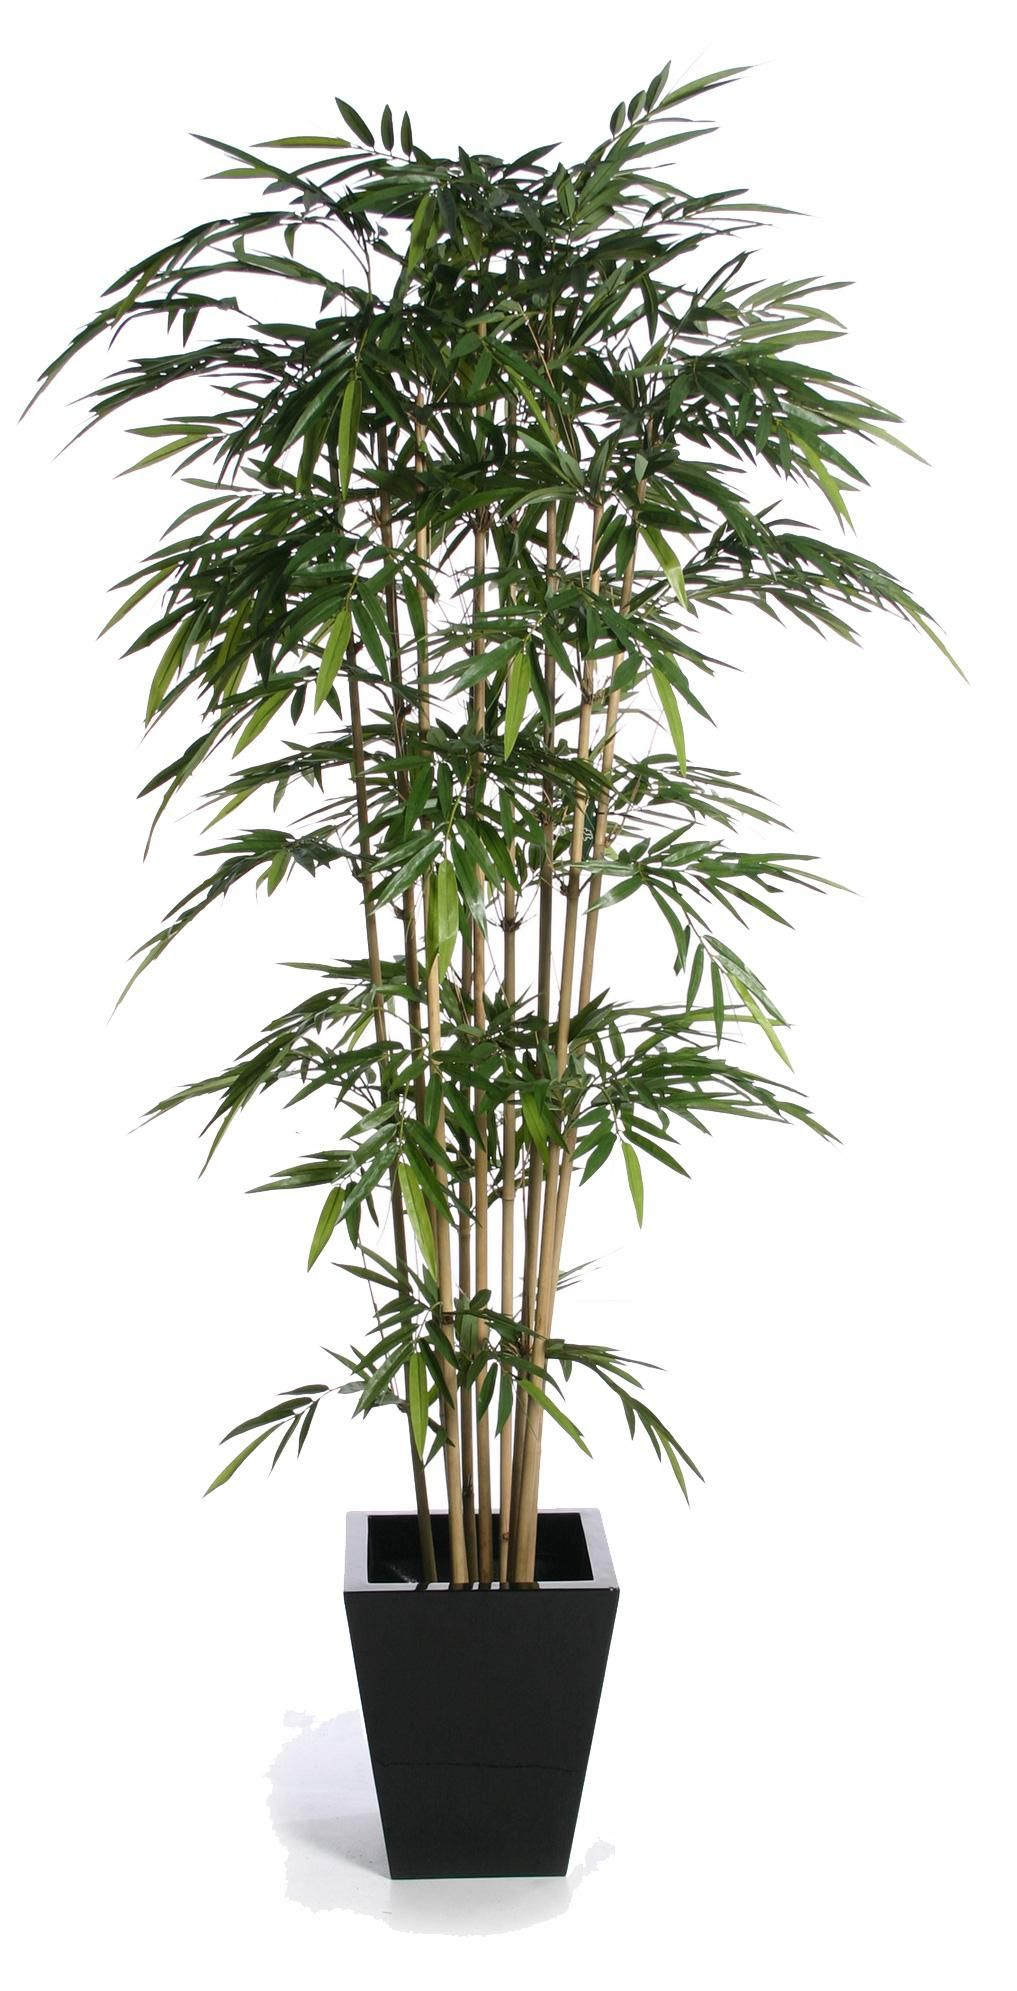 The Best Artificial Plants For Your Home Fake House Plants Living Room Plants House Plants Decor